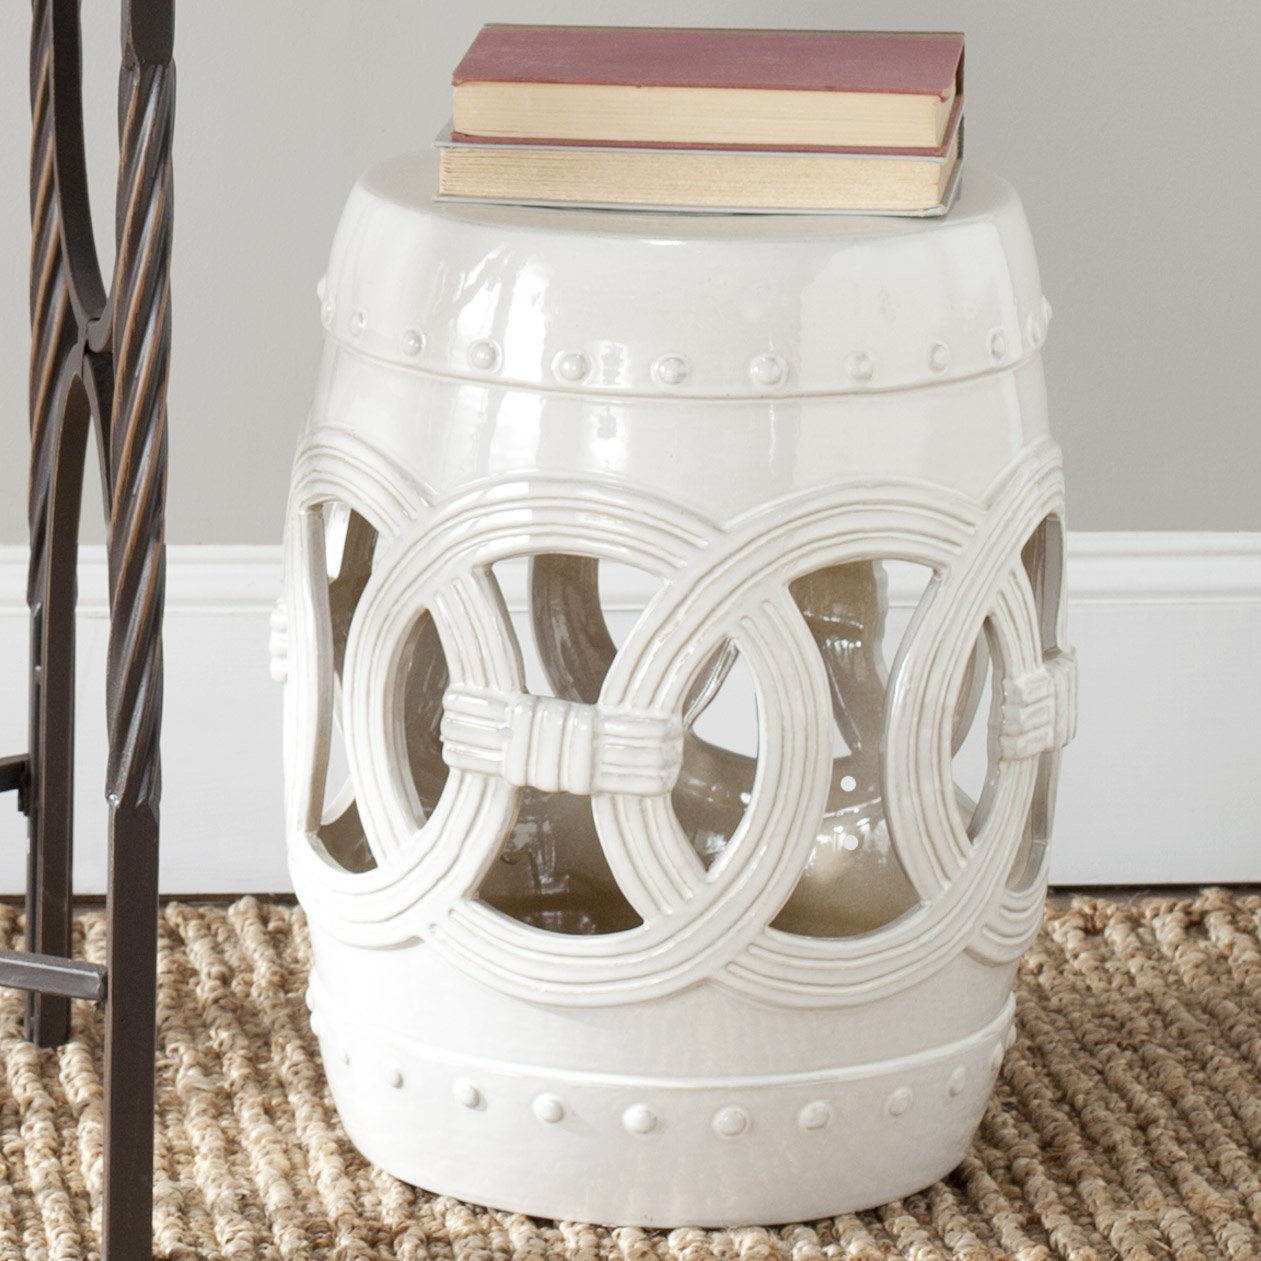 Safavieh Castle Gardens Collection Double Coin White Ceramic Garden Stool by Safavieh (Image #3)